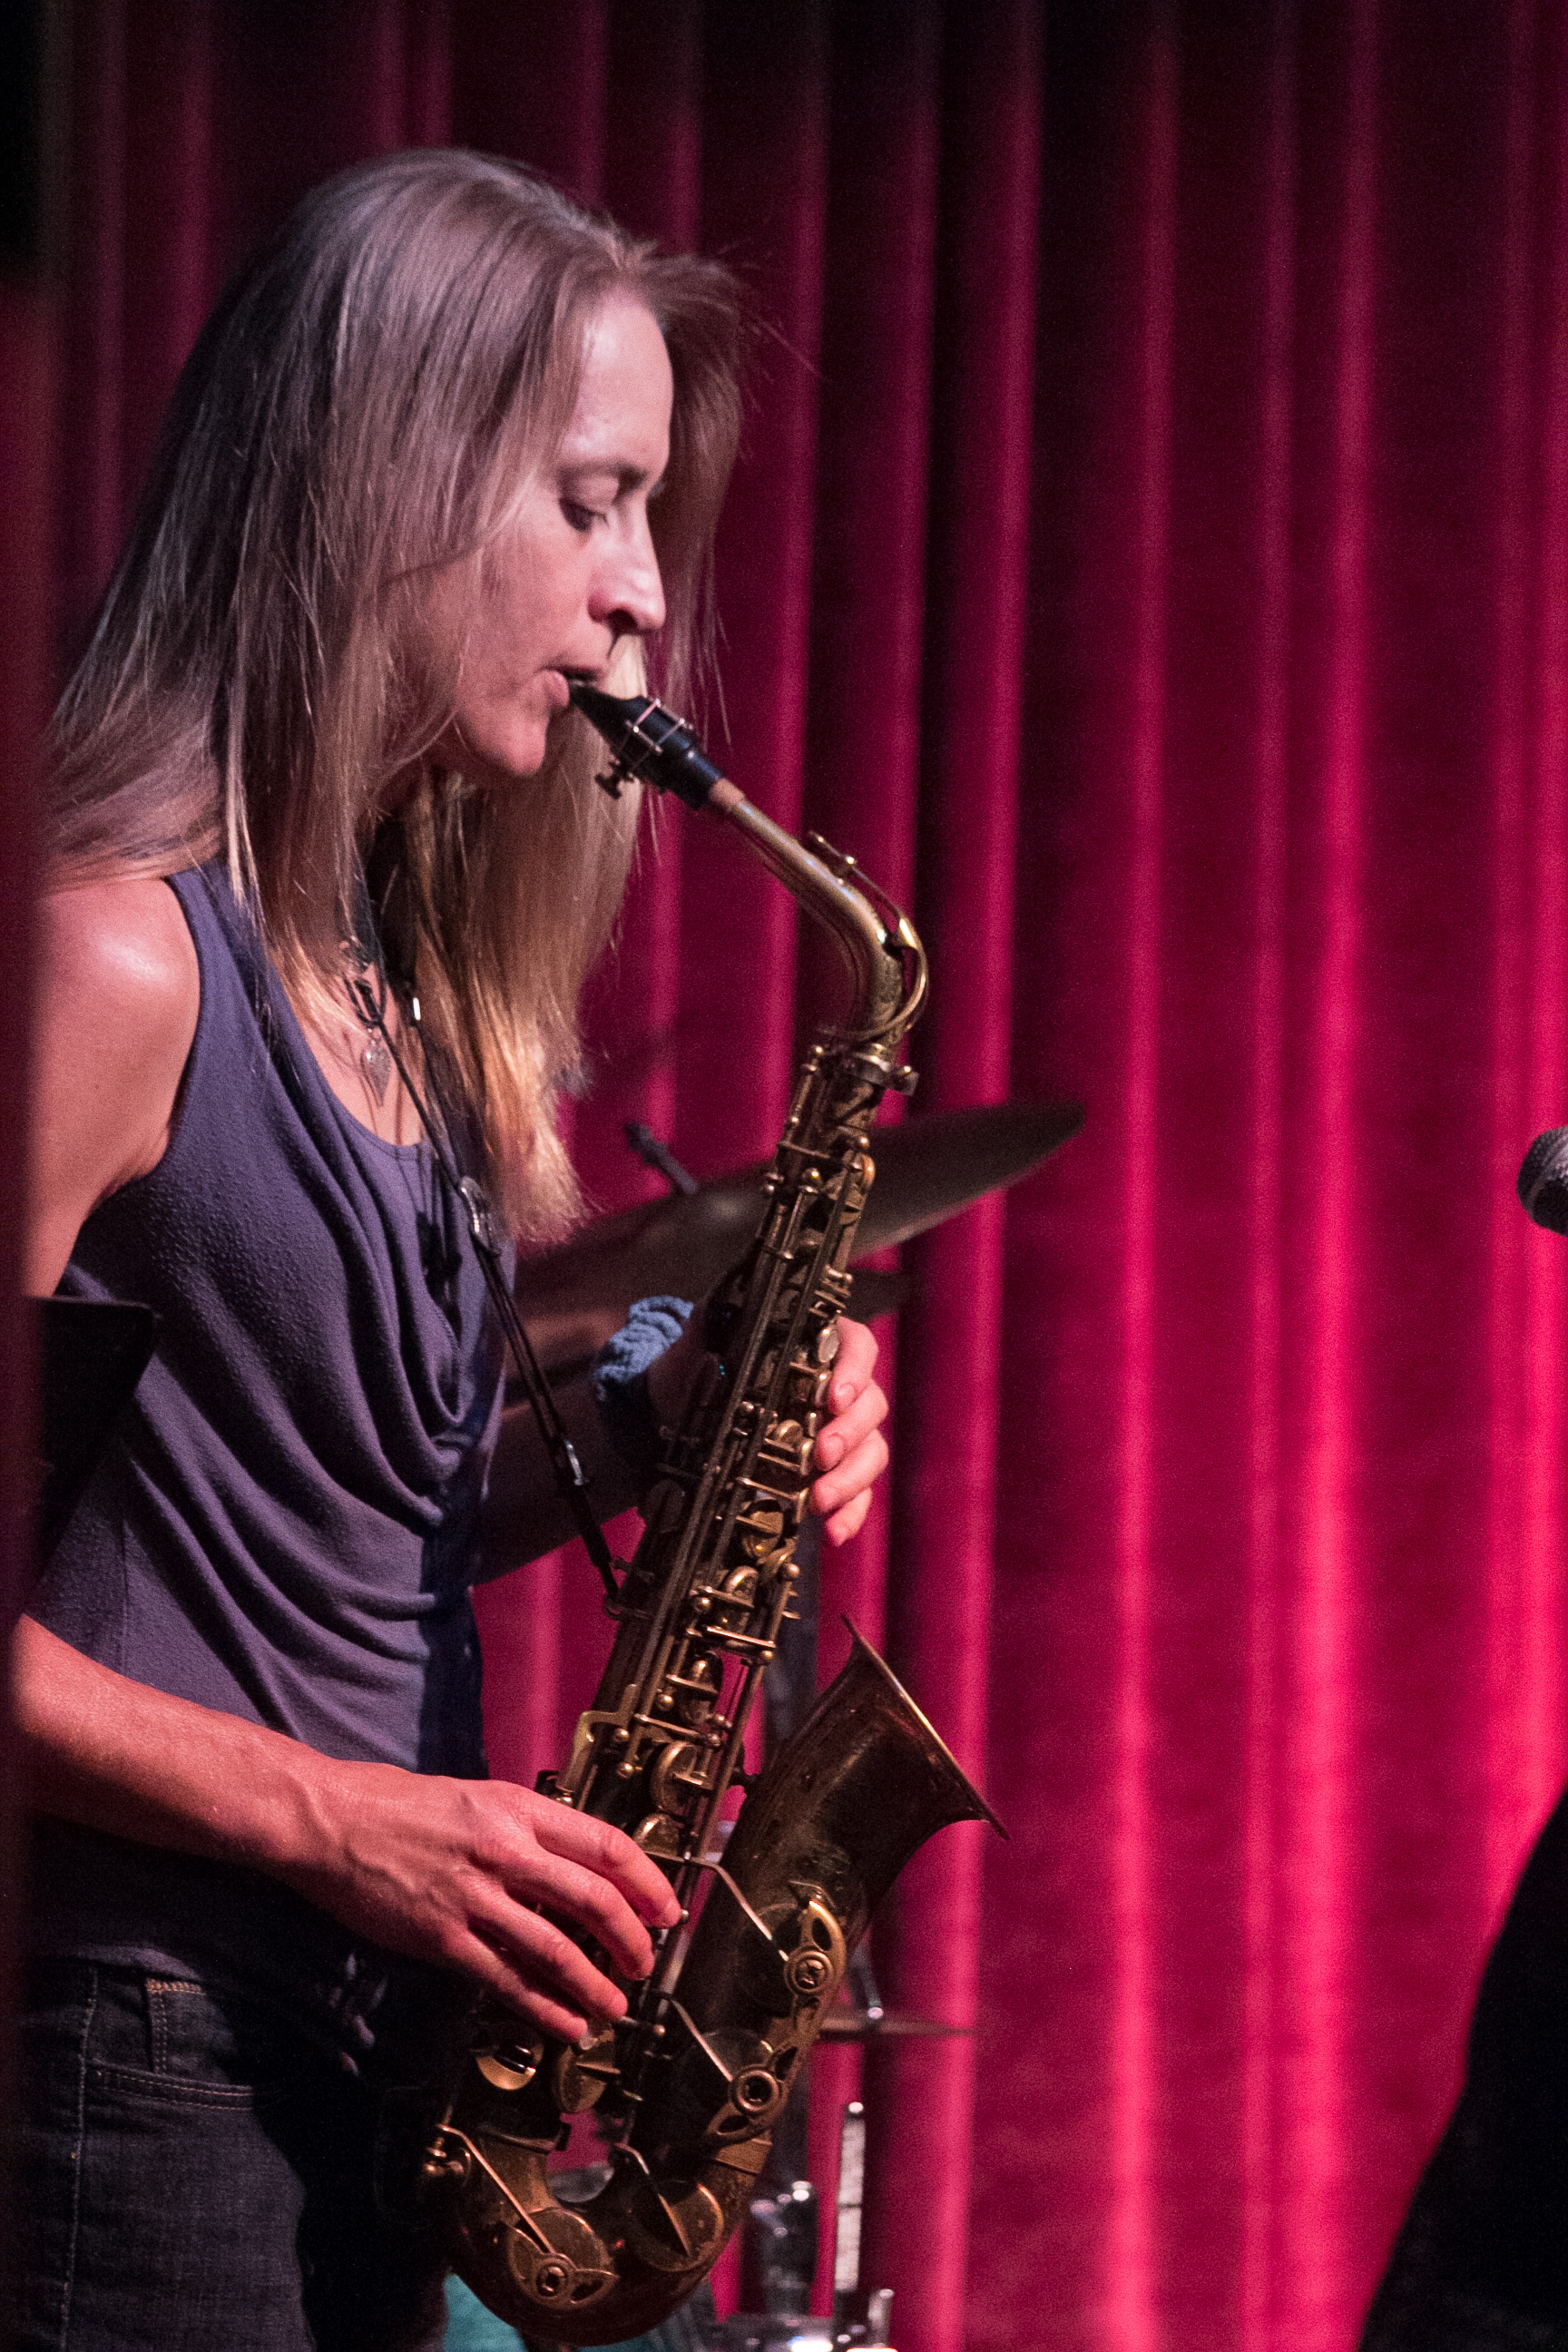 Esther's Muse presents a chord-less trio including Esther Berndt on saxophone, Kevin Murray on drums, and Kazuto Sato on bass. The trio will perform a combination of jazz standards and avant-garde improvisation, inspired by the late great Ornette Coleman.